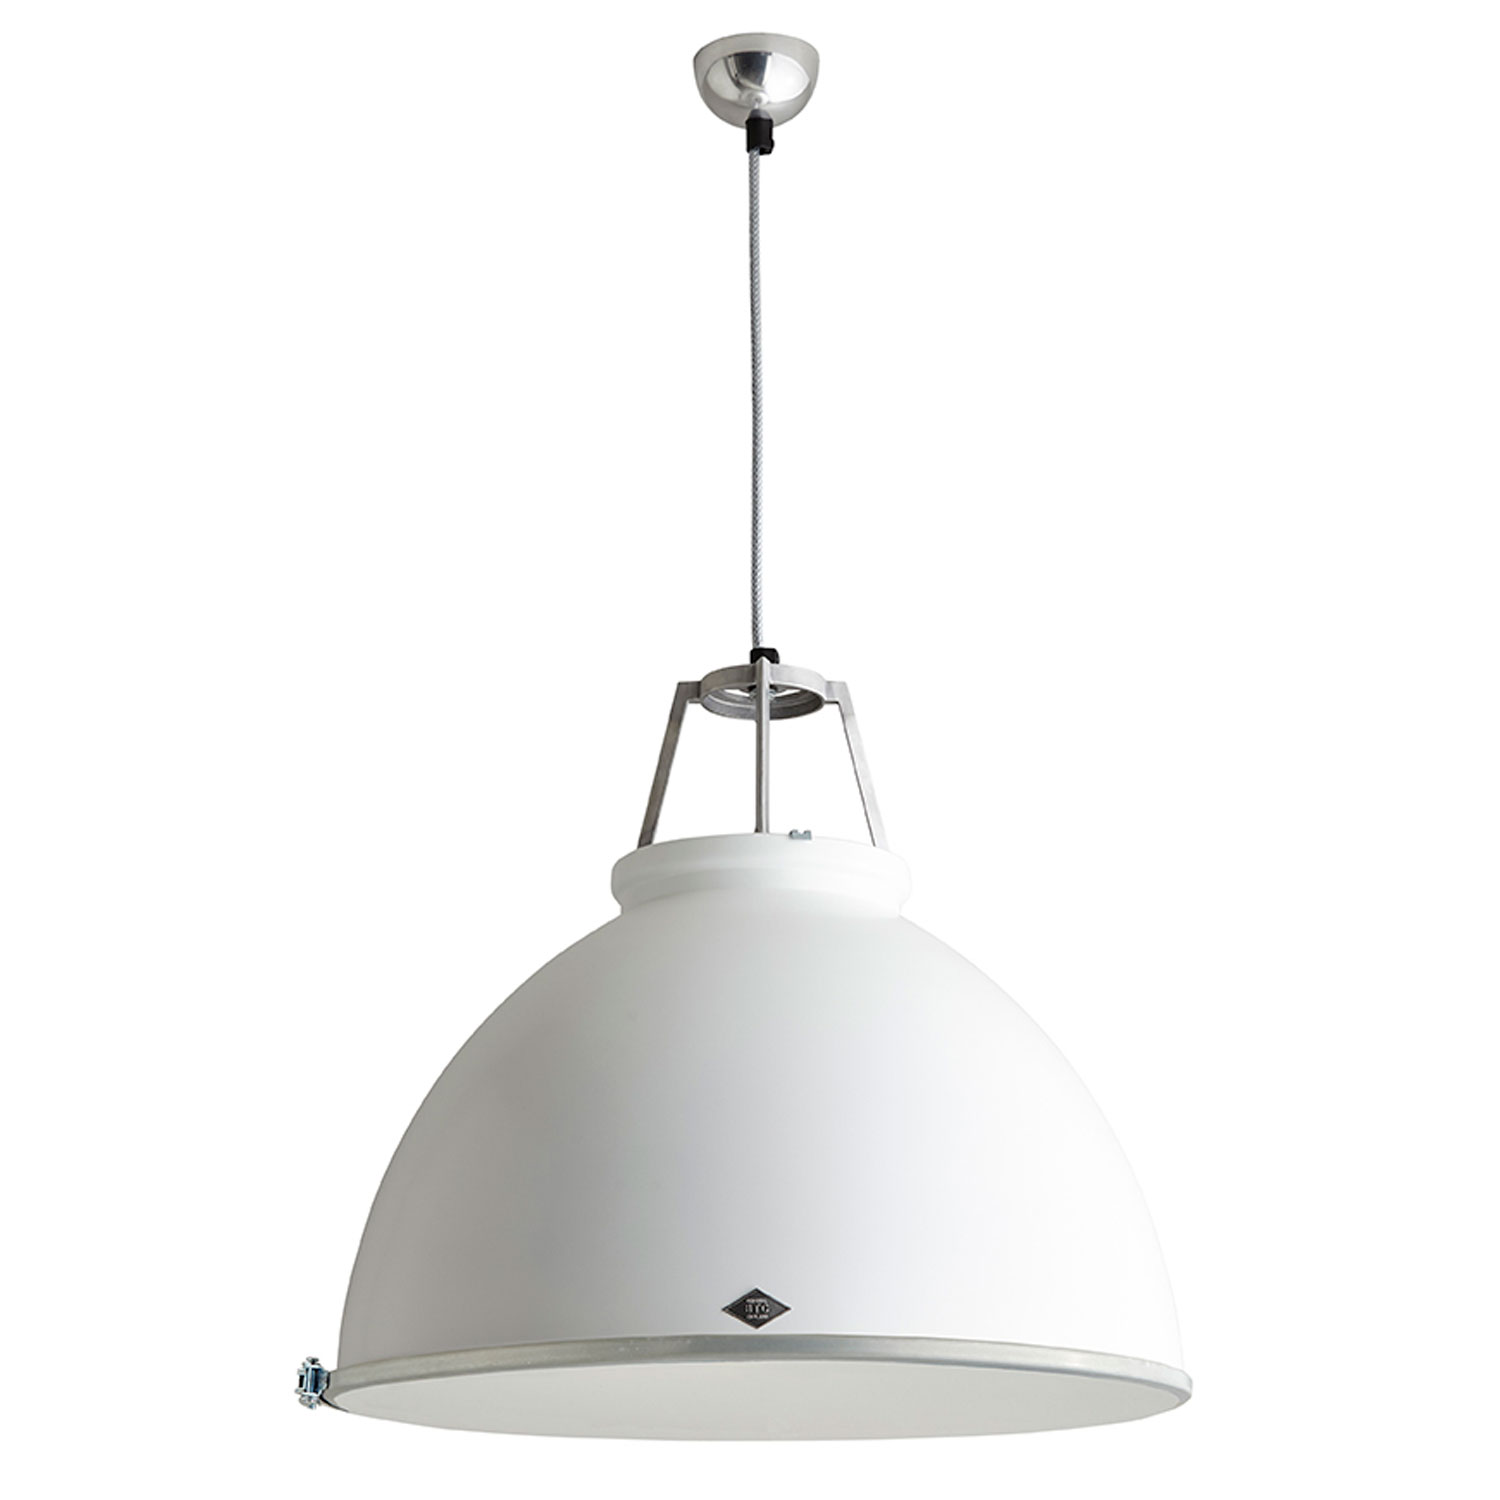 Titan Size 5 Pendant Light, White with Etched Glass